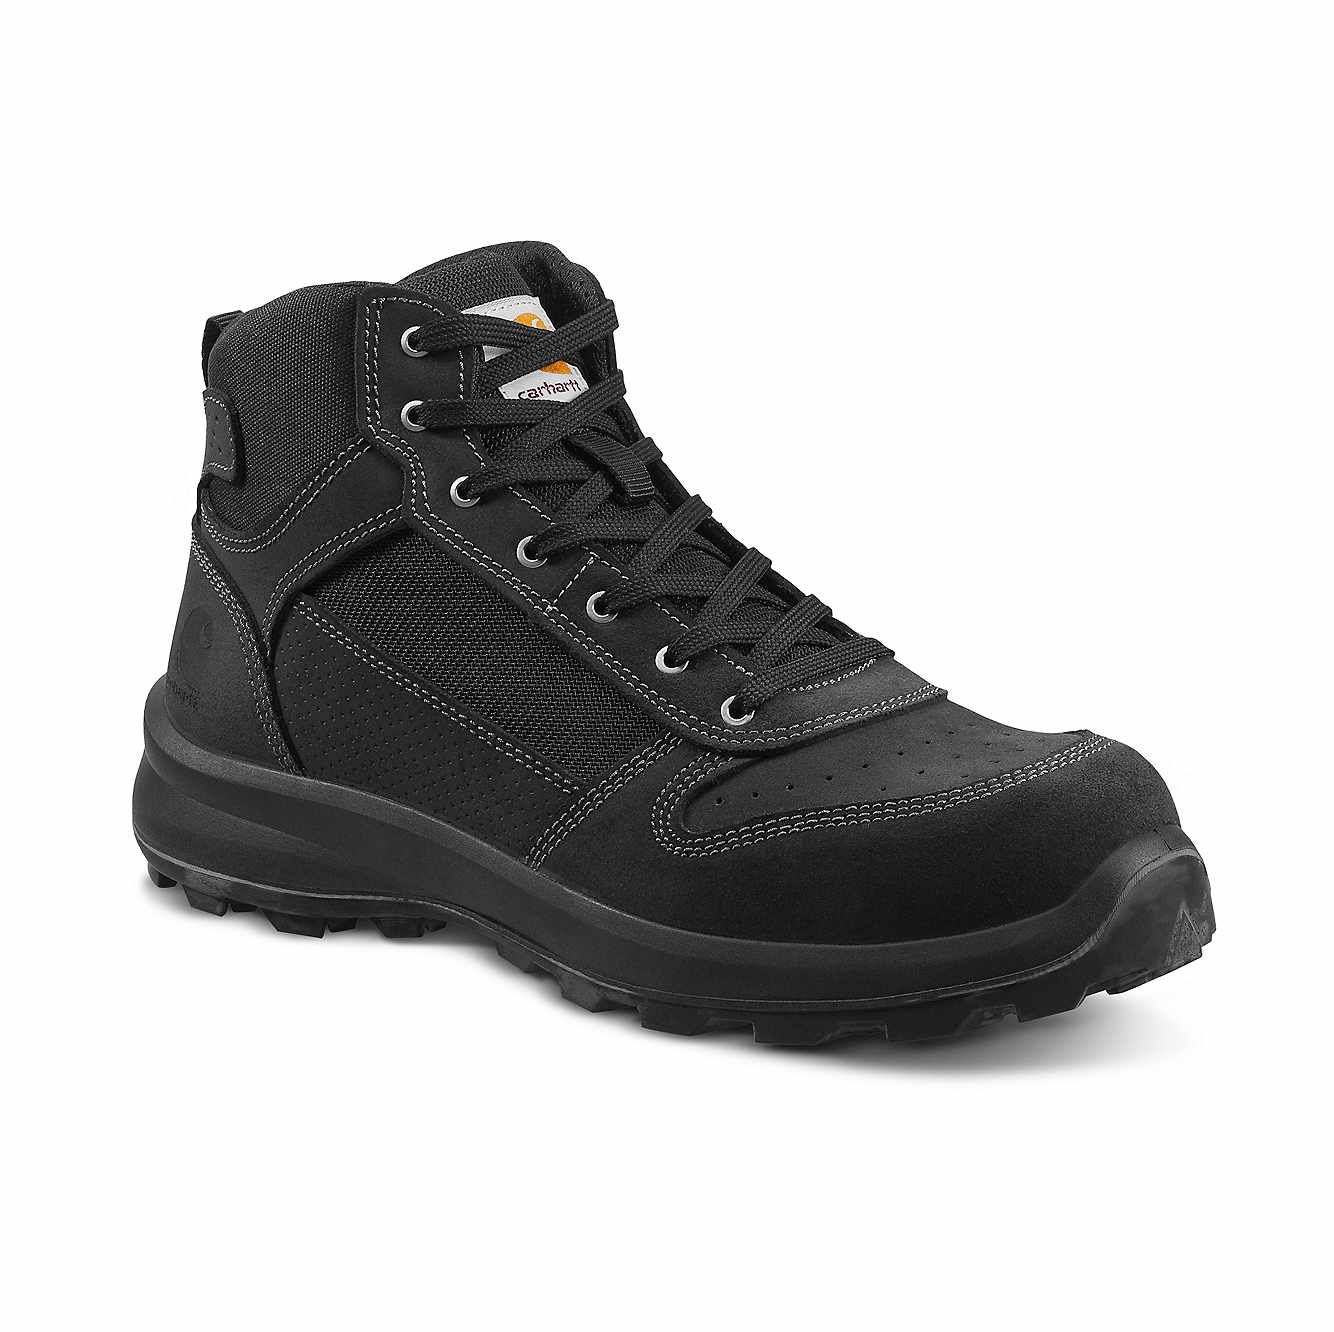 Picture of MICHIGAN RUGGED FLEX® S1P MIDCUT SAFETY SHOE